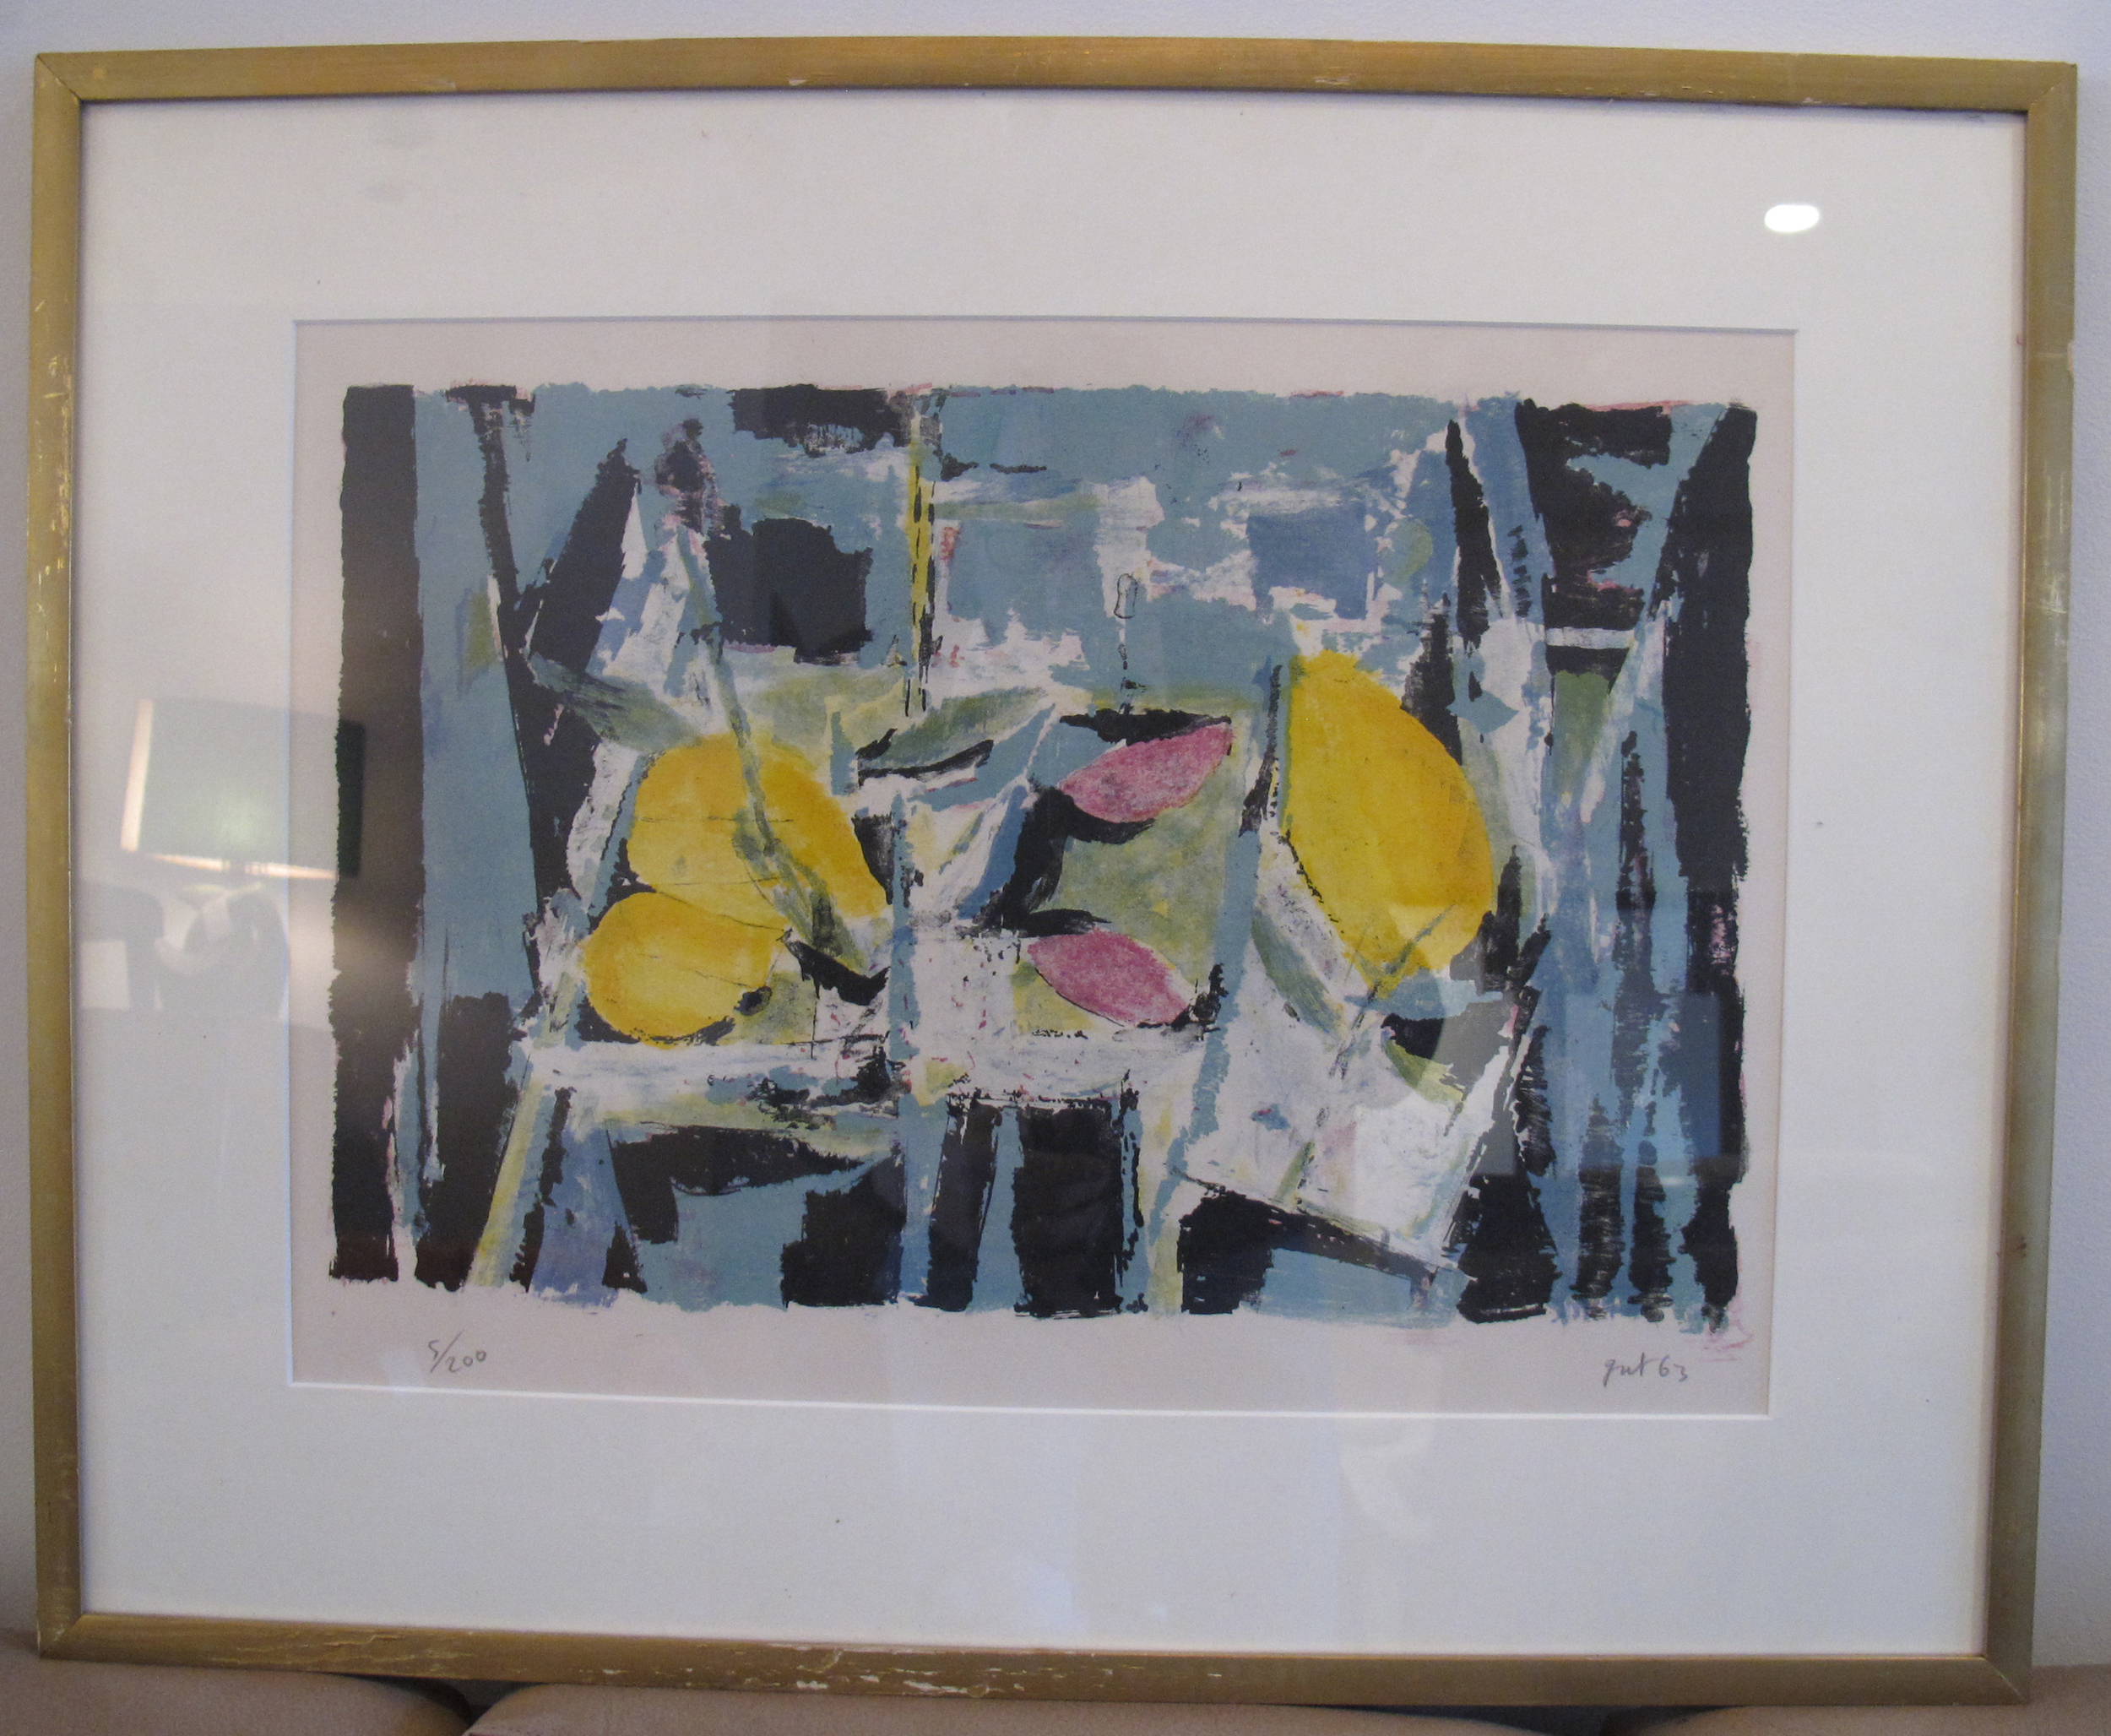 MID CENTURY ABSTRACT LITHOGRAPH 'NATURE MORTE' BY JEAN JACQUES GUT